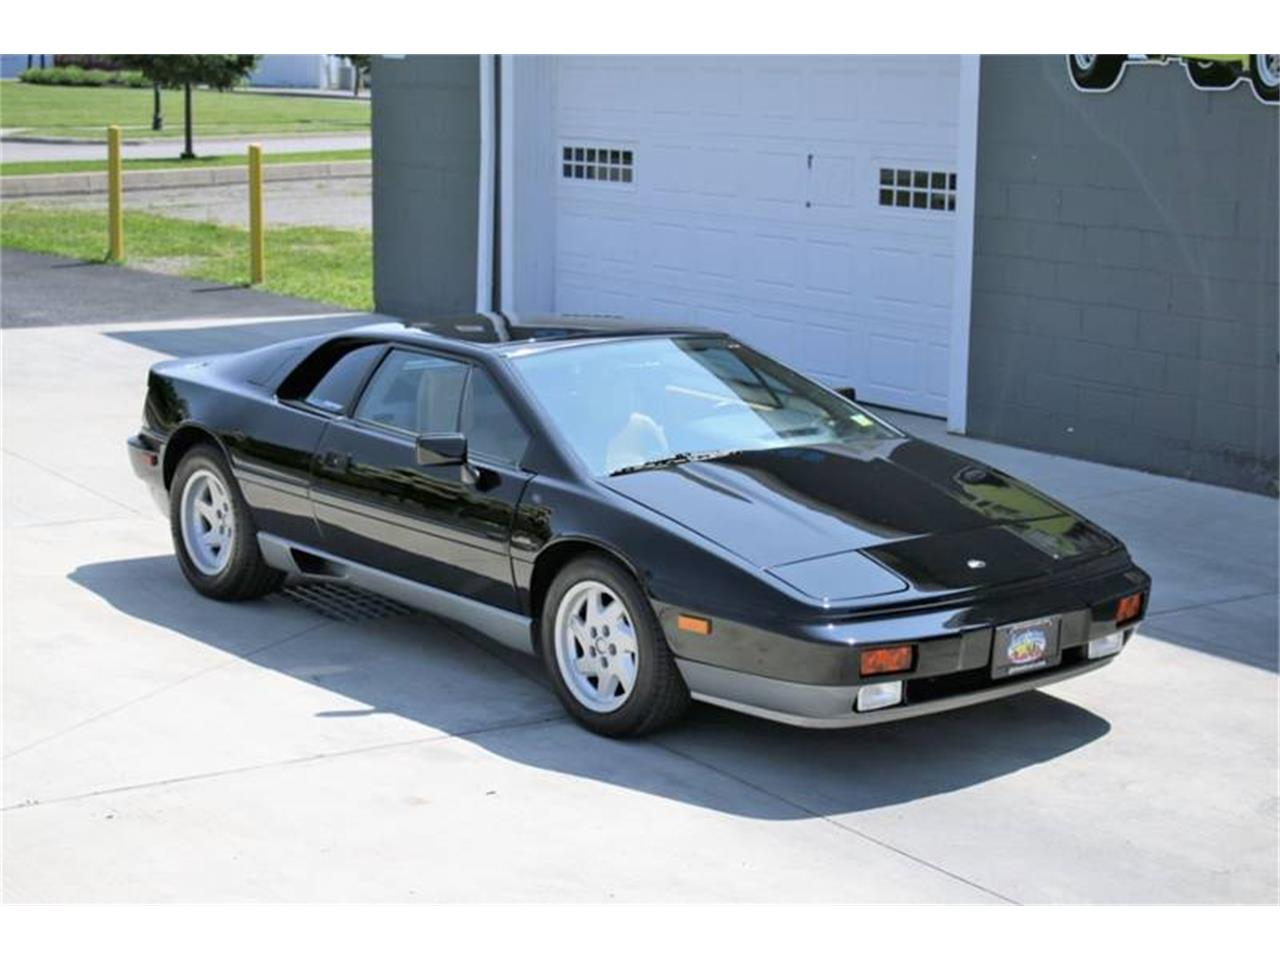 Large Picture of 1988 Lotus Esprit located in New York - $26,495.00 Offered by Great Lakes Classic Cars - QE3Z